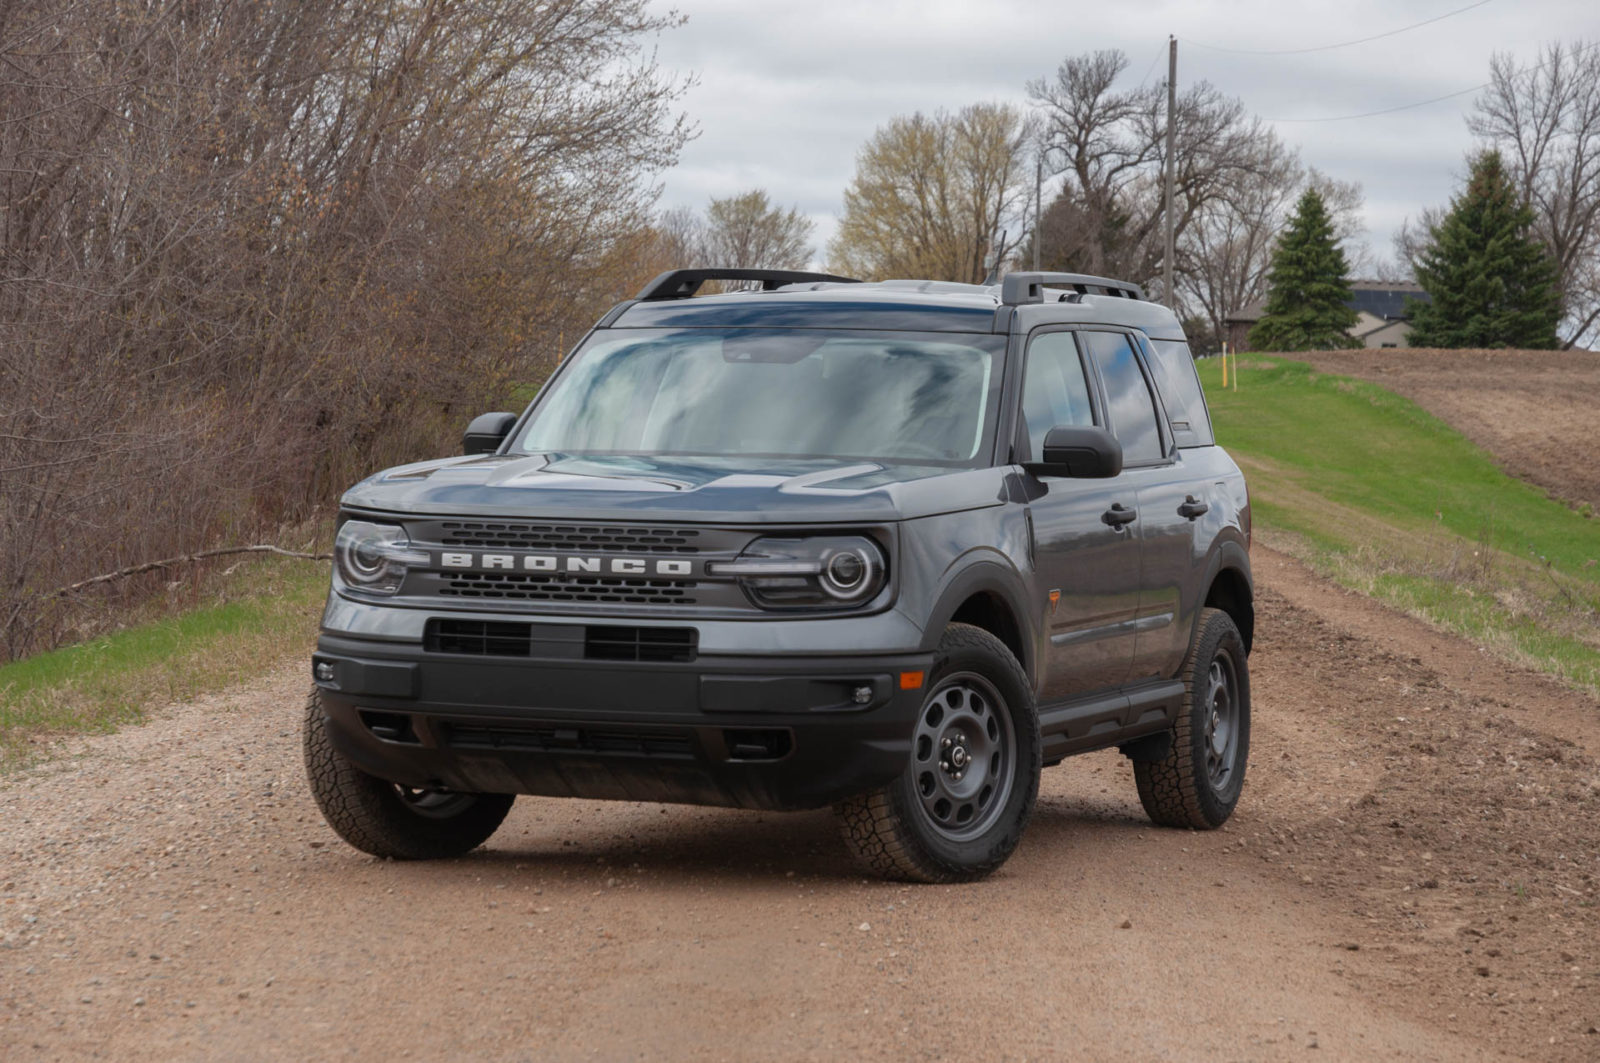 review-update:-2021-ford-bronco-sport-badlands-will-make-jeep-(compass)-buyers-reconsider